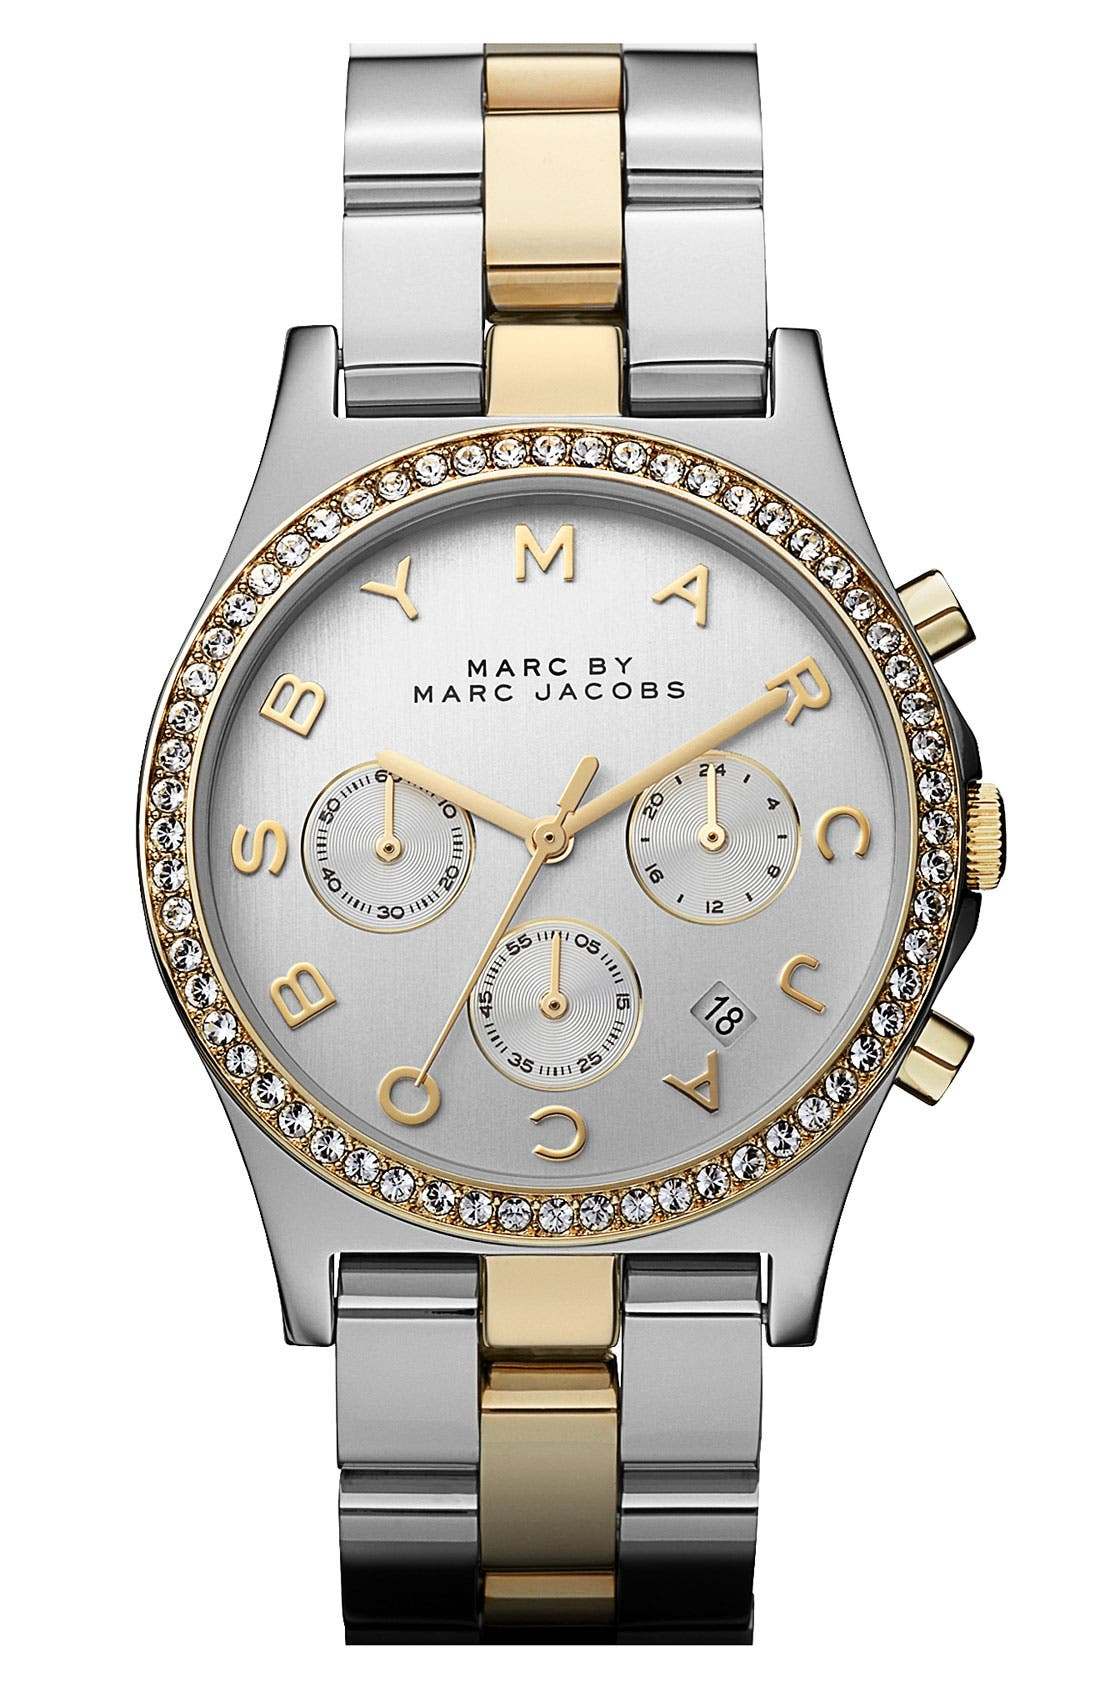 Main Image - MARC JACOBS 'Henry' Chronograph & Crystal Topring Watch